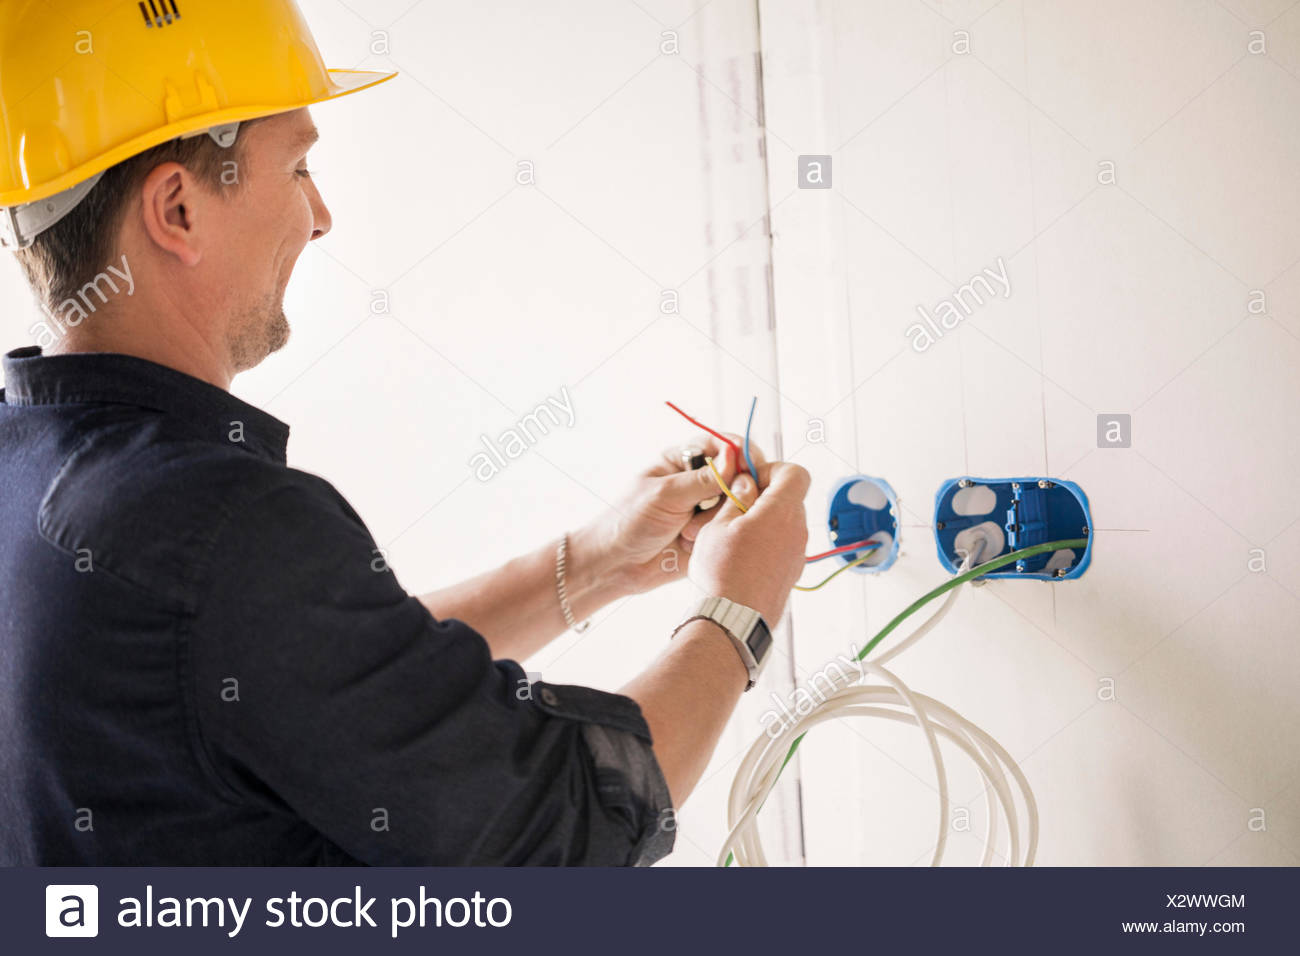 Electrician working at site - Stock Image